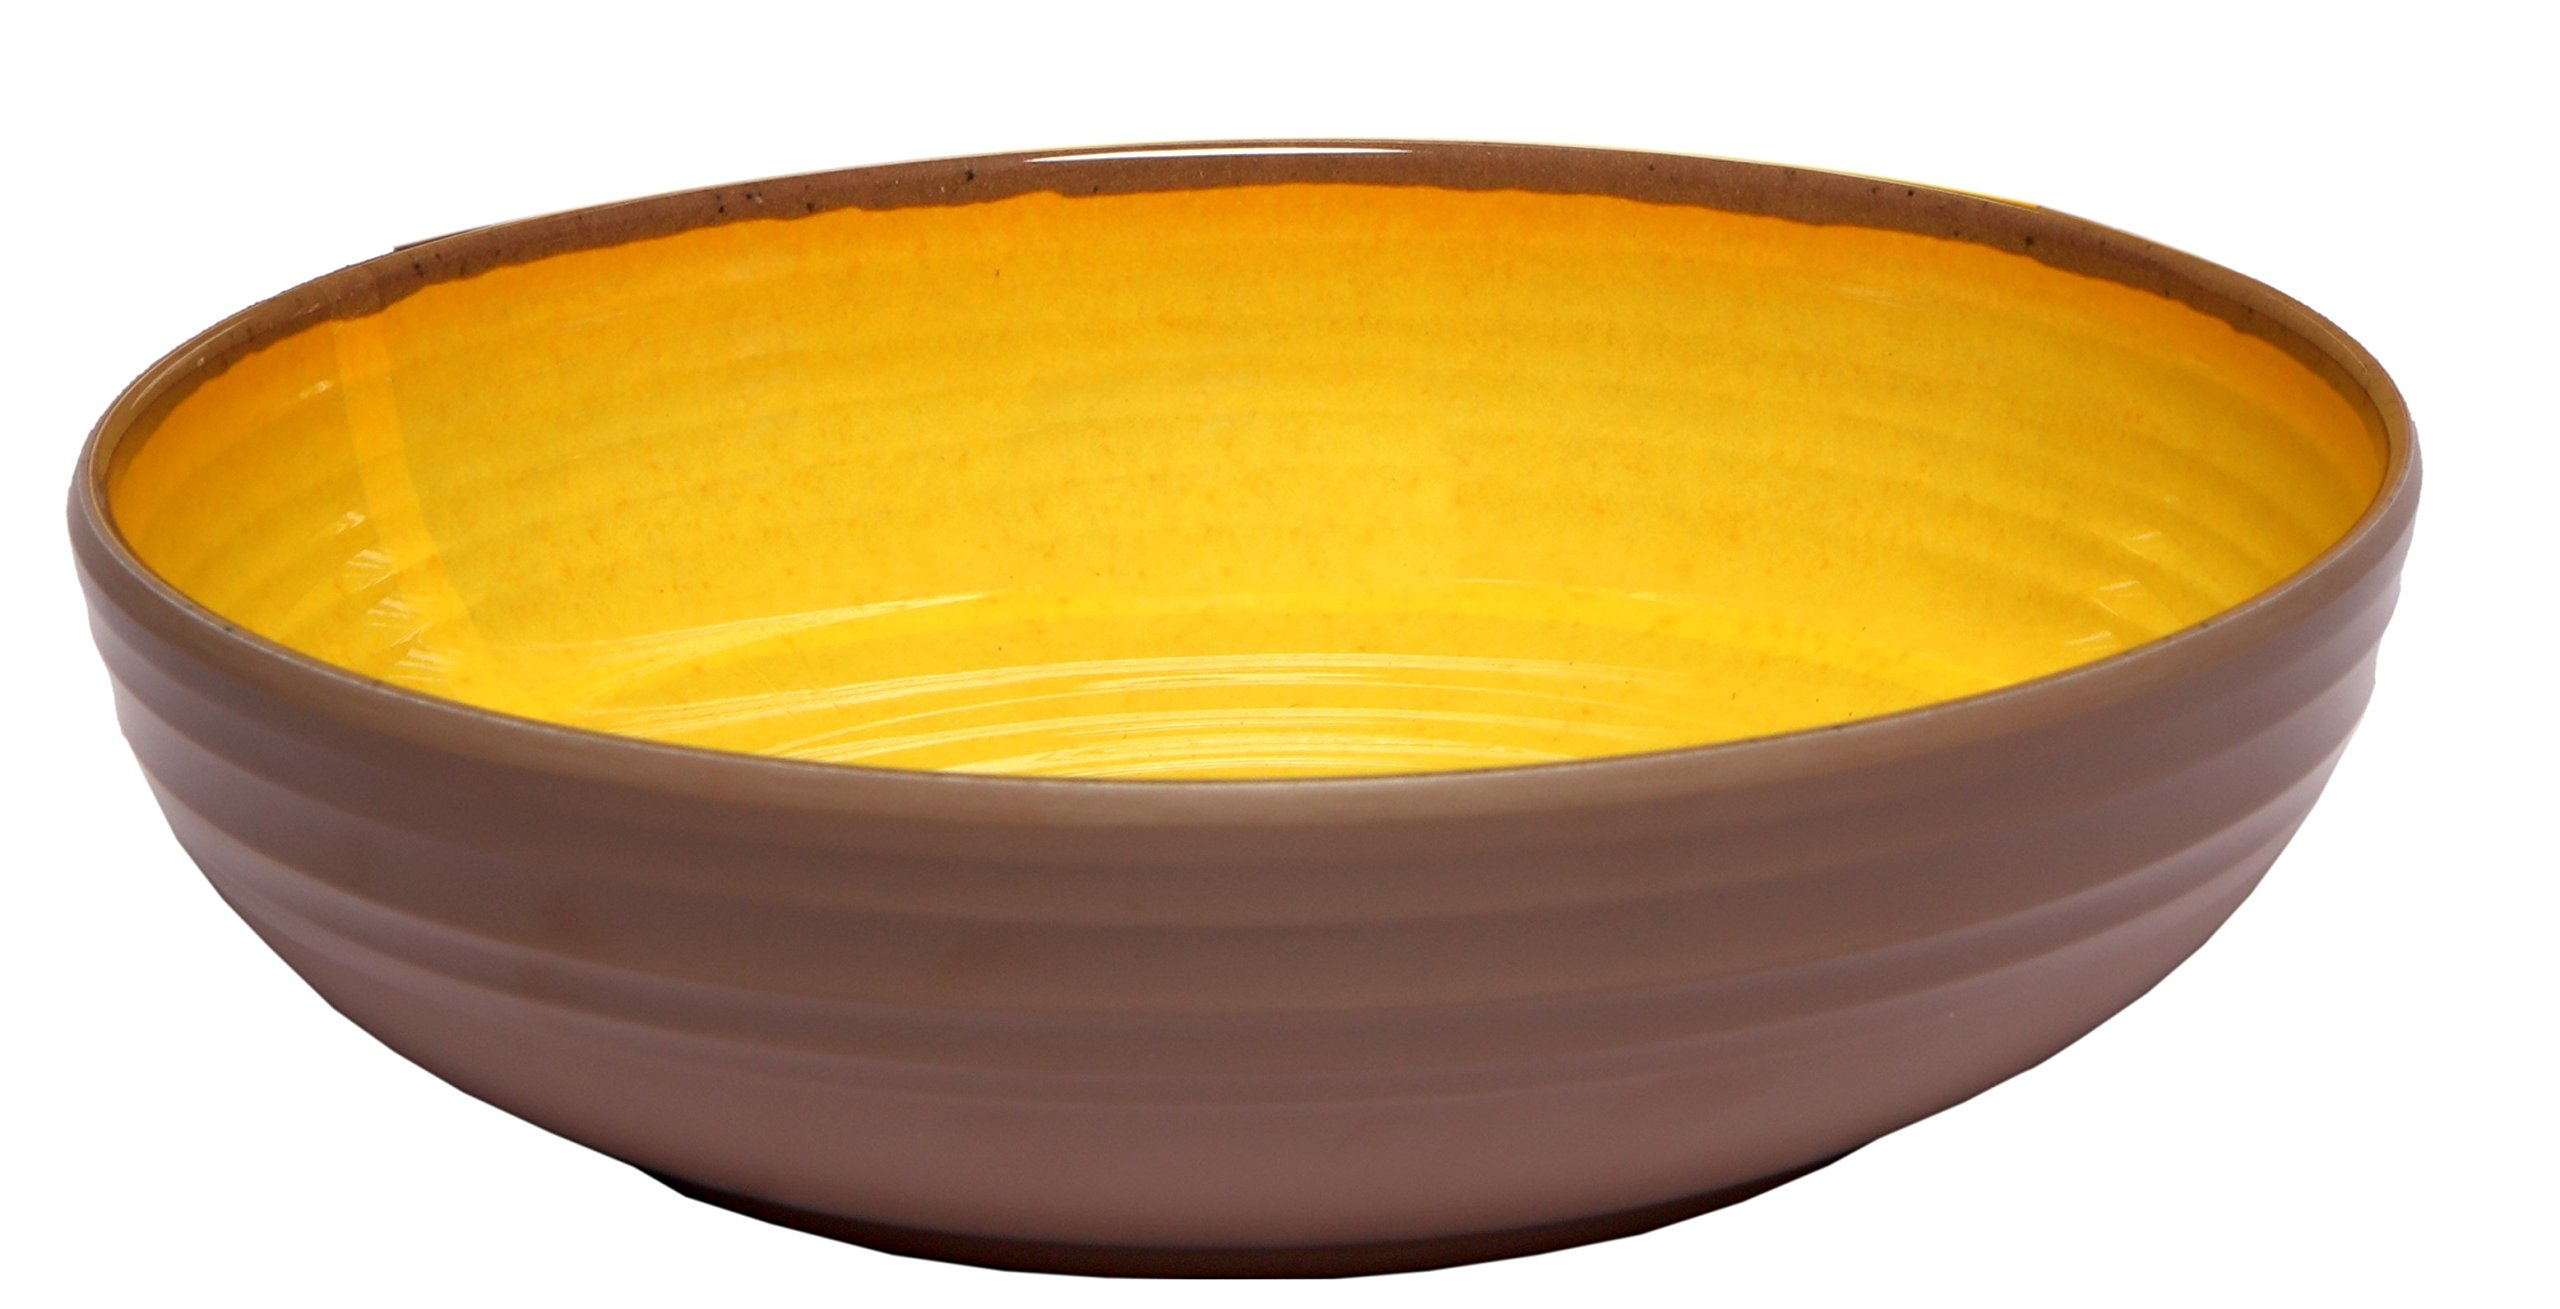 Melange 6-Piece 100% Melamine Pasta Bowl Set (Clay Collection ) | Shatter-Proof and Chip-Resistant Melamine Pasta Bowls | Color: Yellow